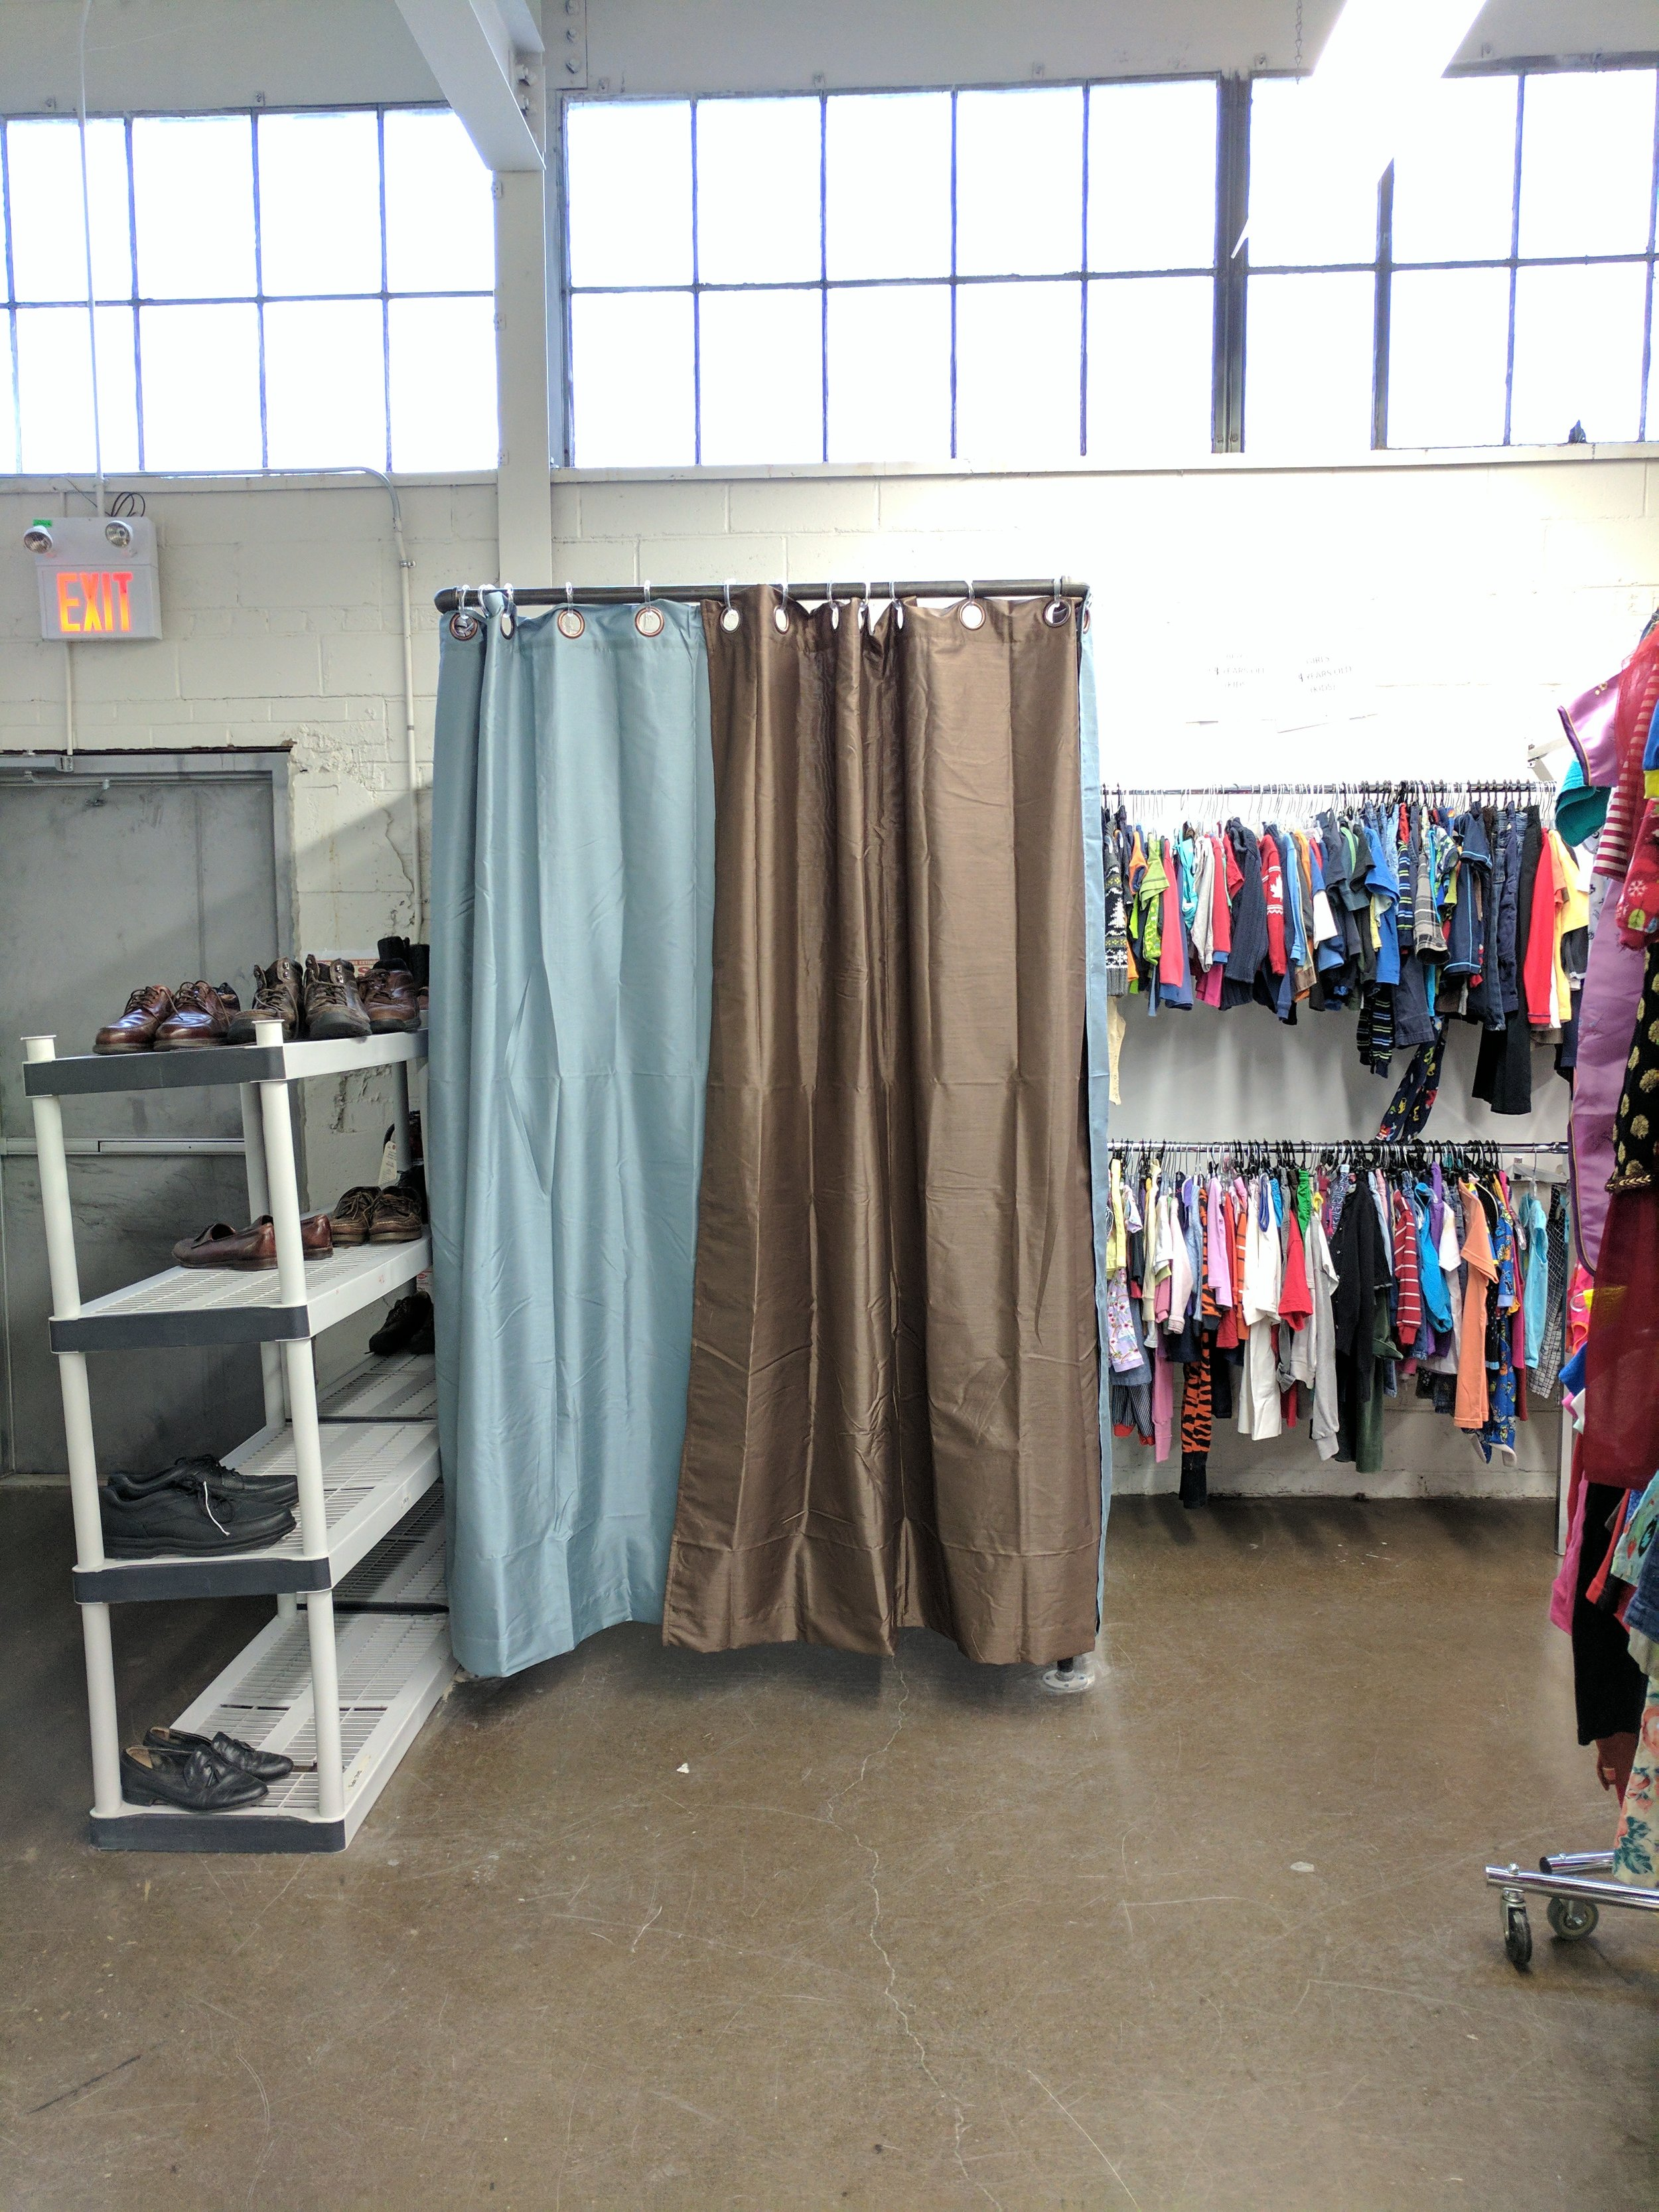 Our client had a vision for what they wanted the change rooms to look like. We helped to bring that vision to life! We constructed three of these black steel pipe change rooms to replace the old ones